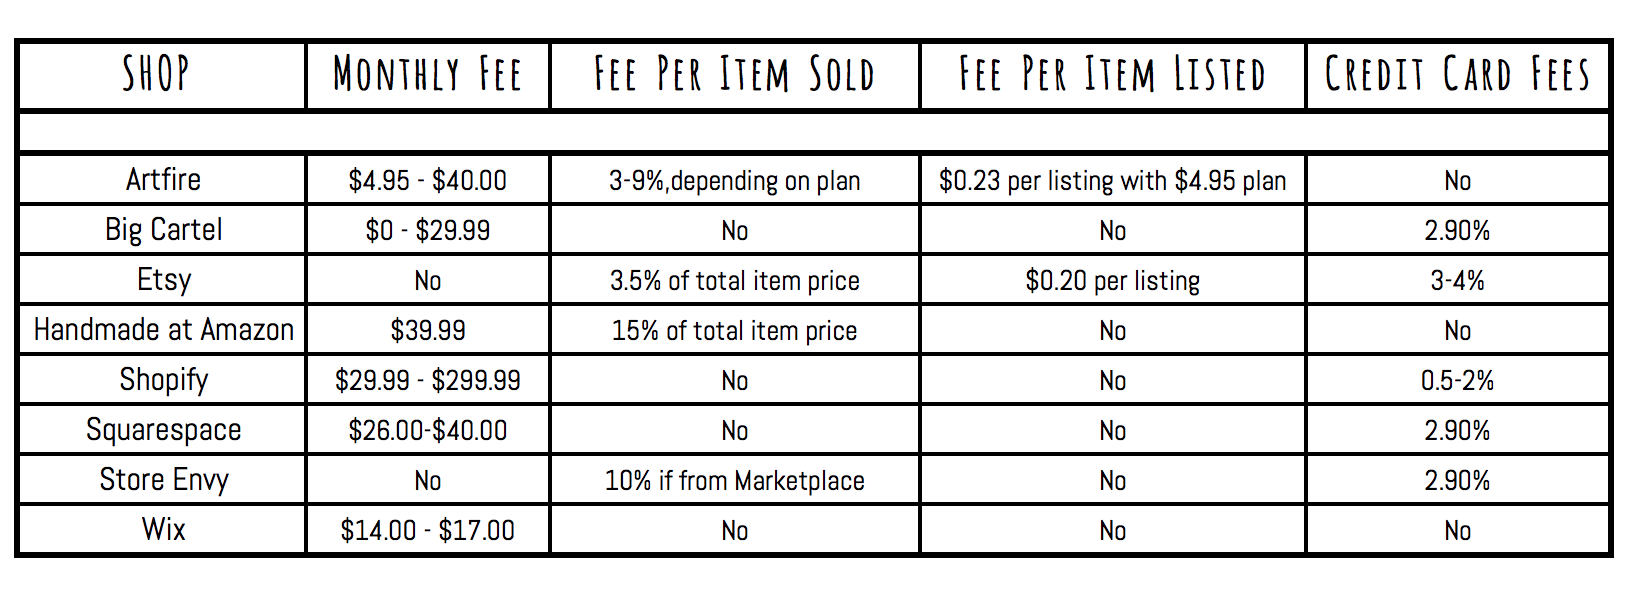 Picture of Site and Transaction Fees